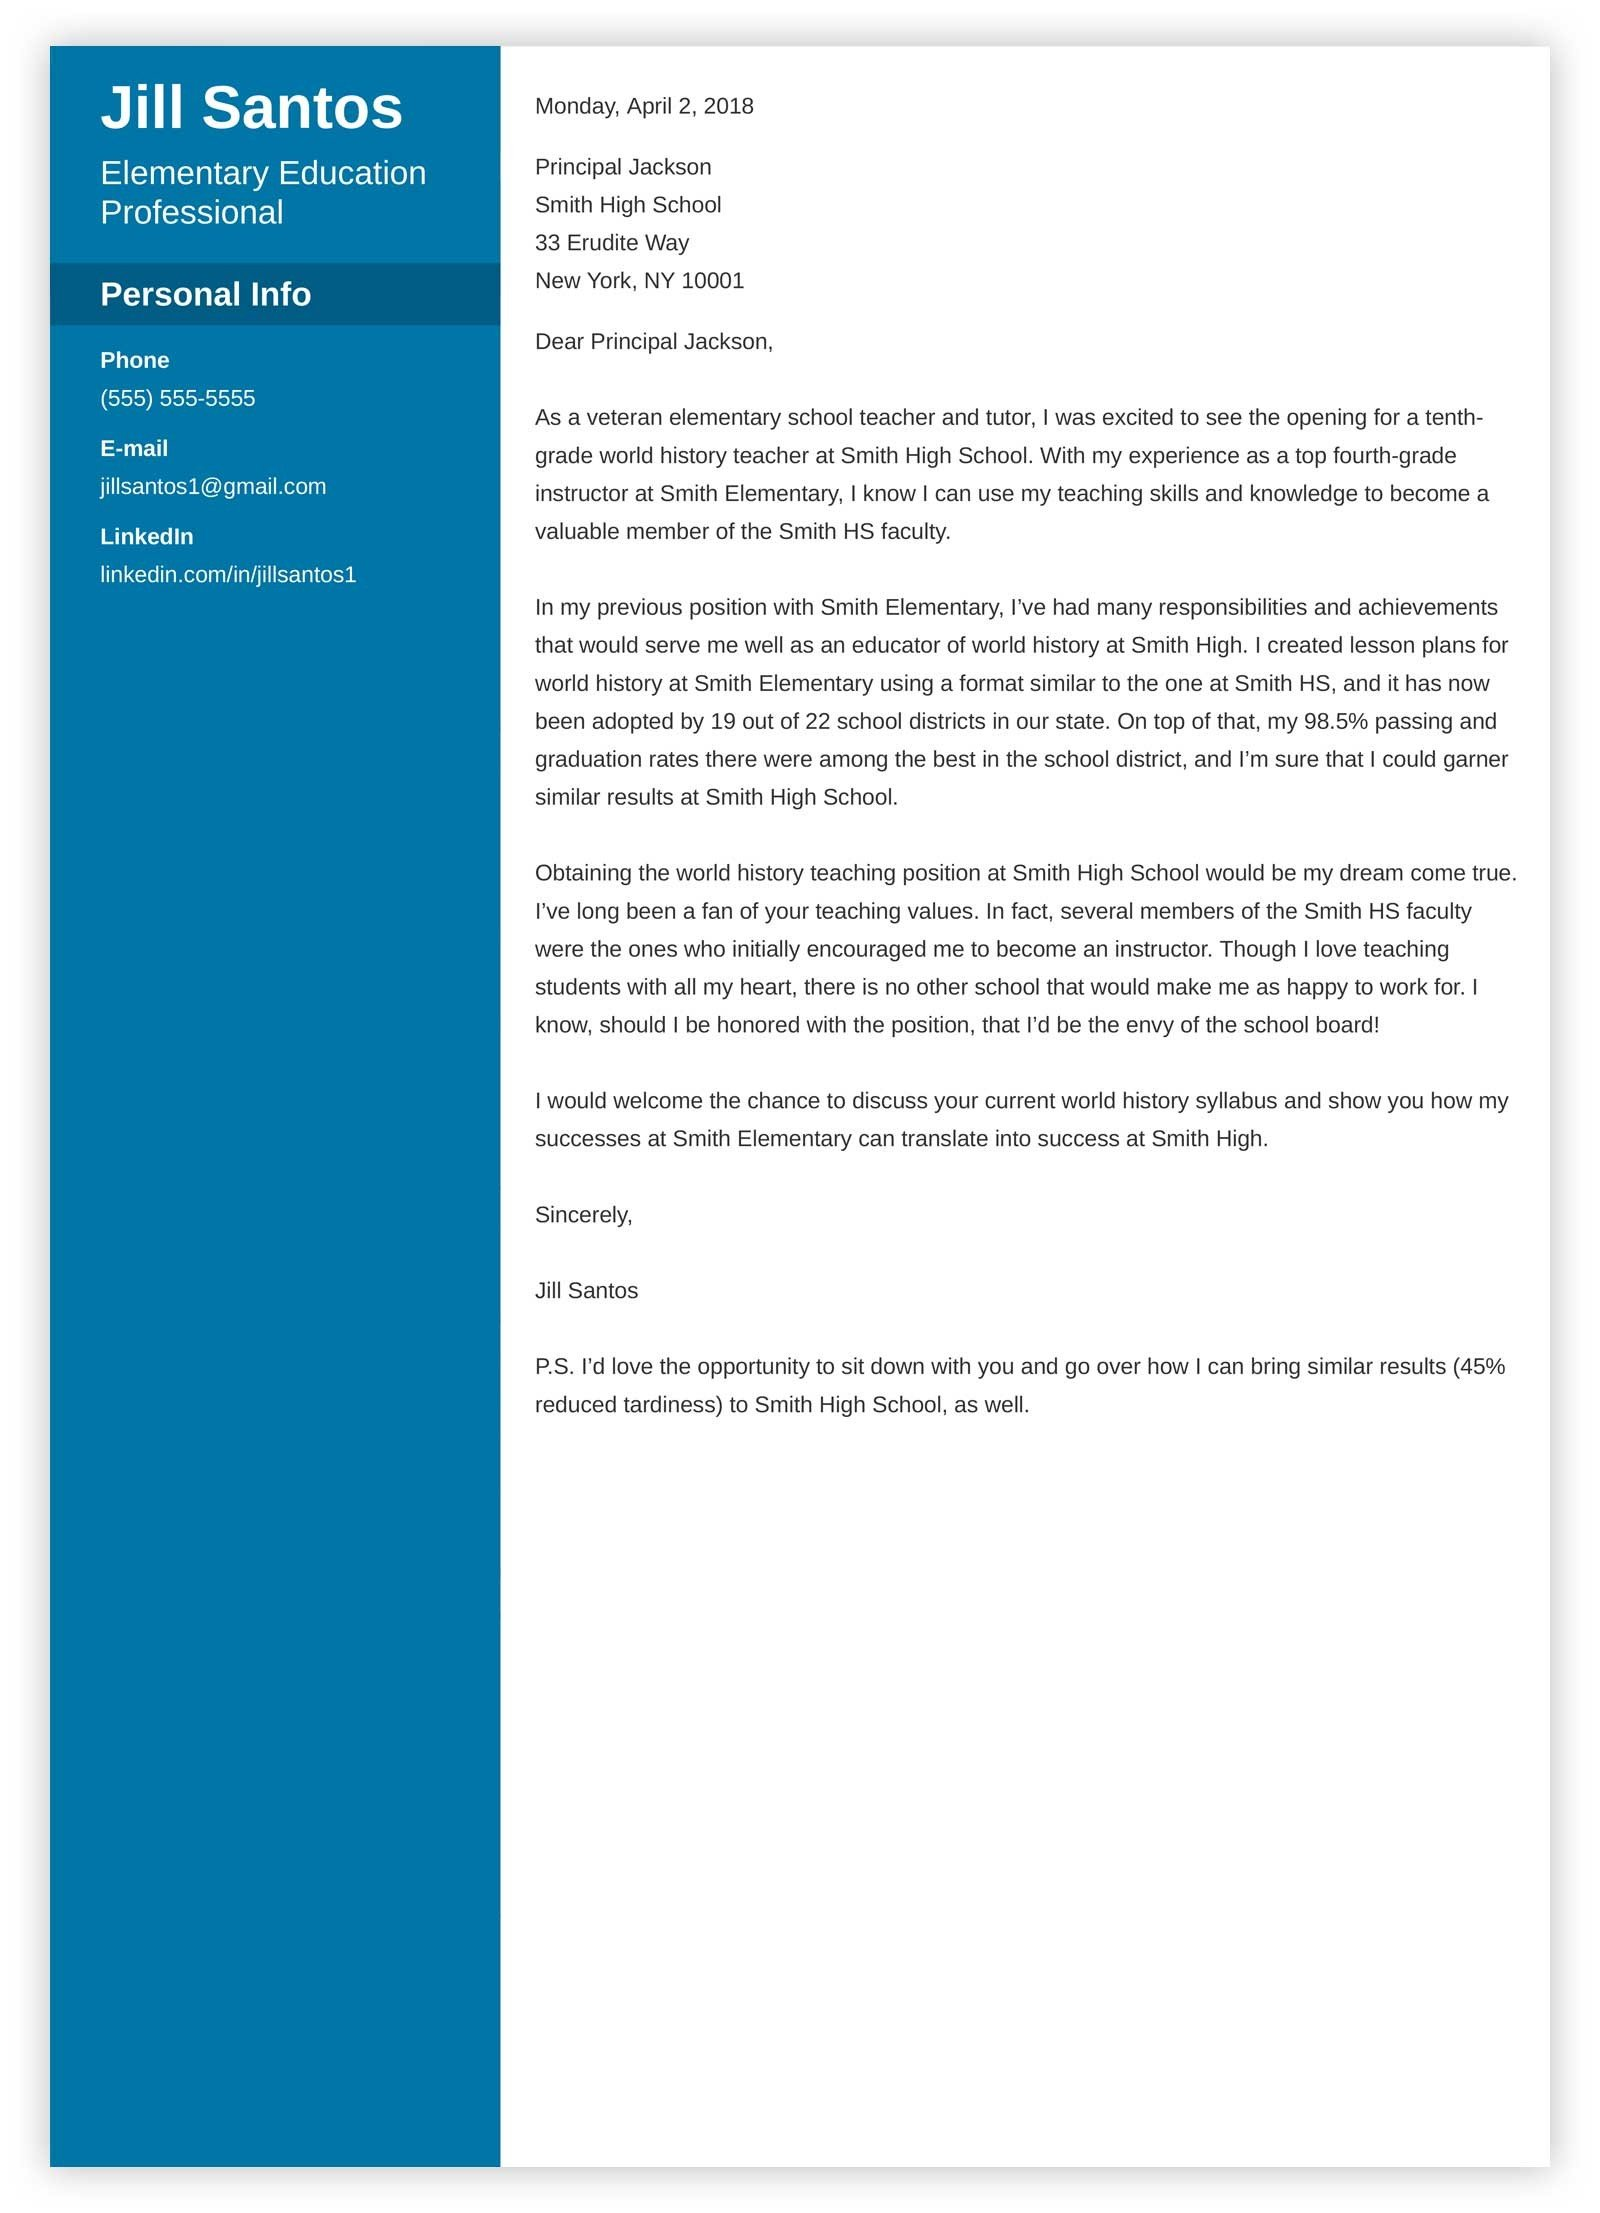 Teacher Cover Letter Sample  Complete Writing Guide 20 Examples